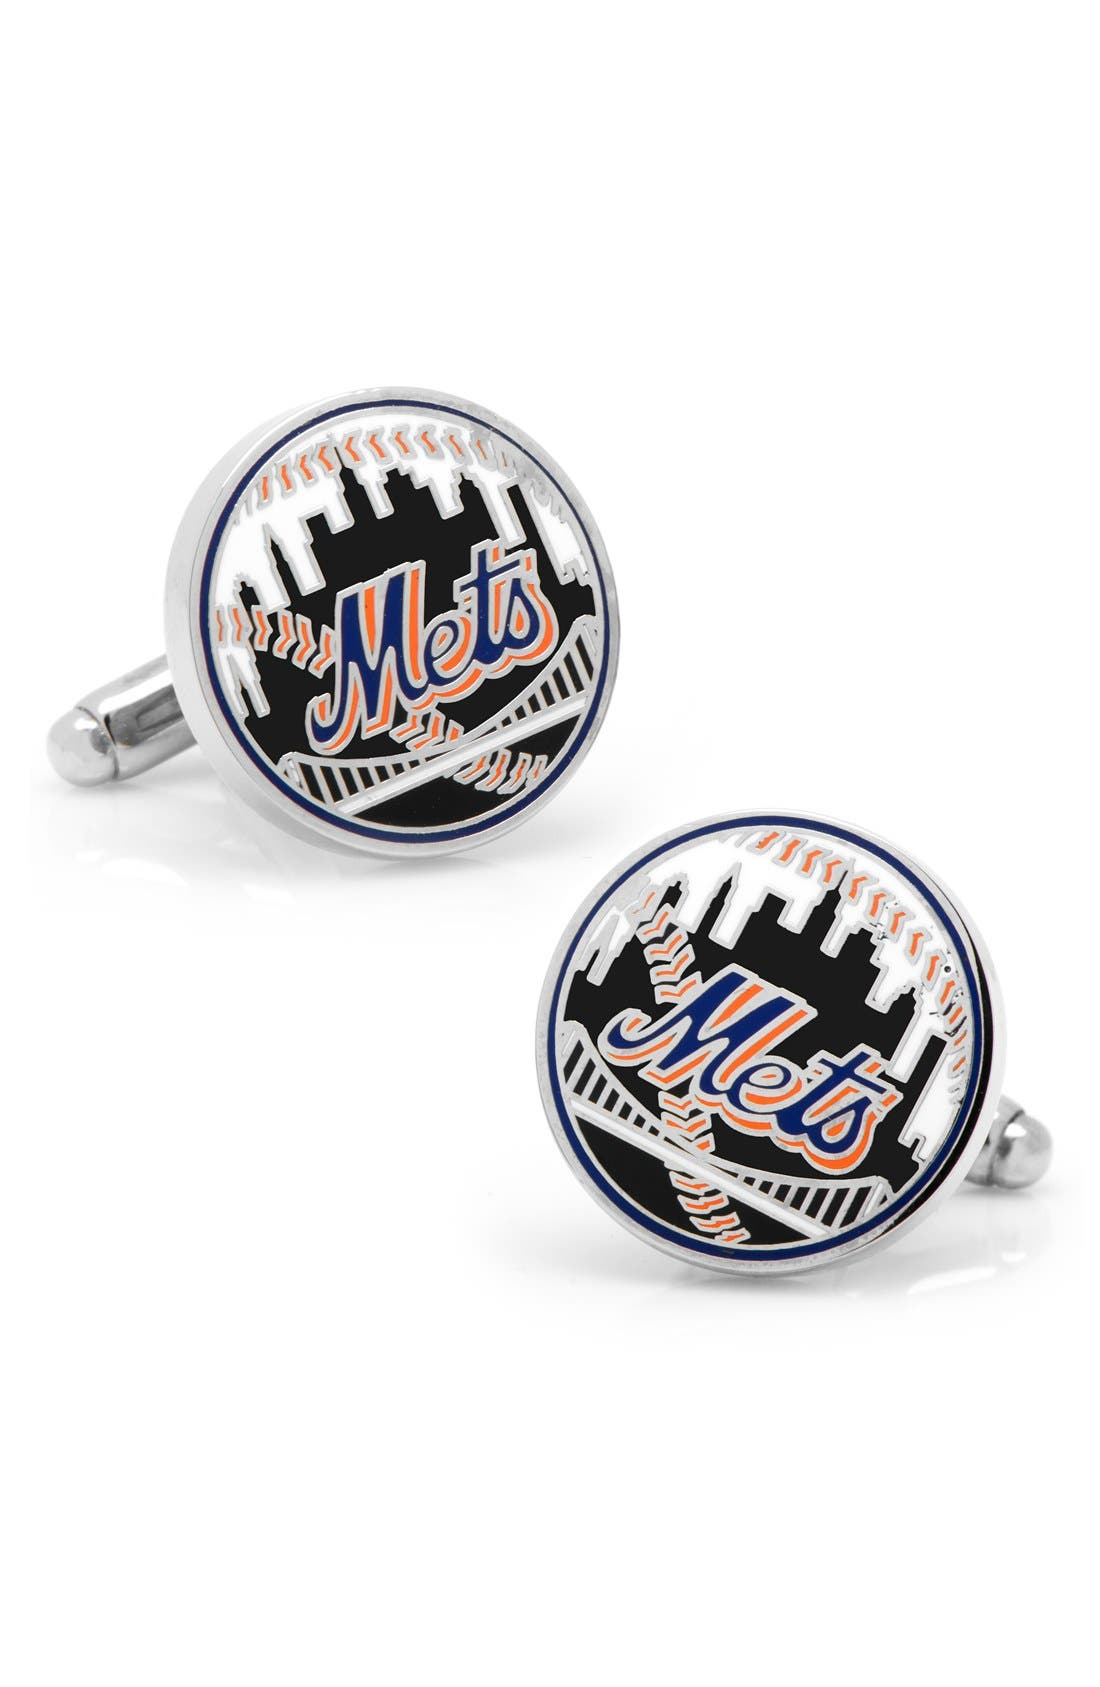 CUFFLINKS, INC. New York Mets Cuff Links